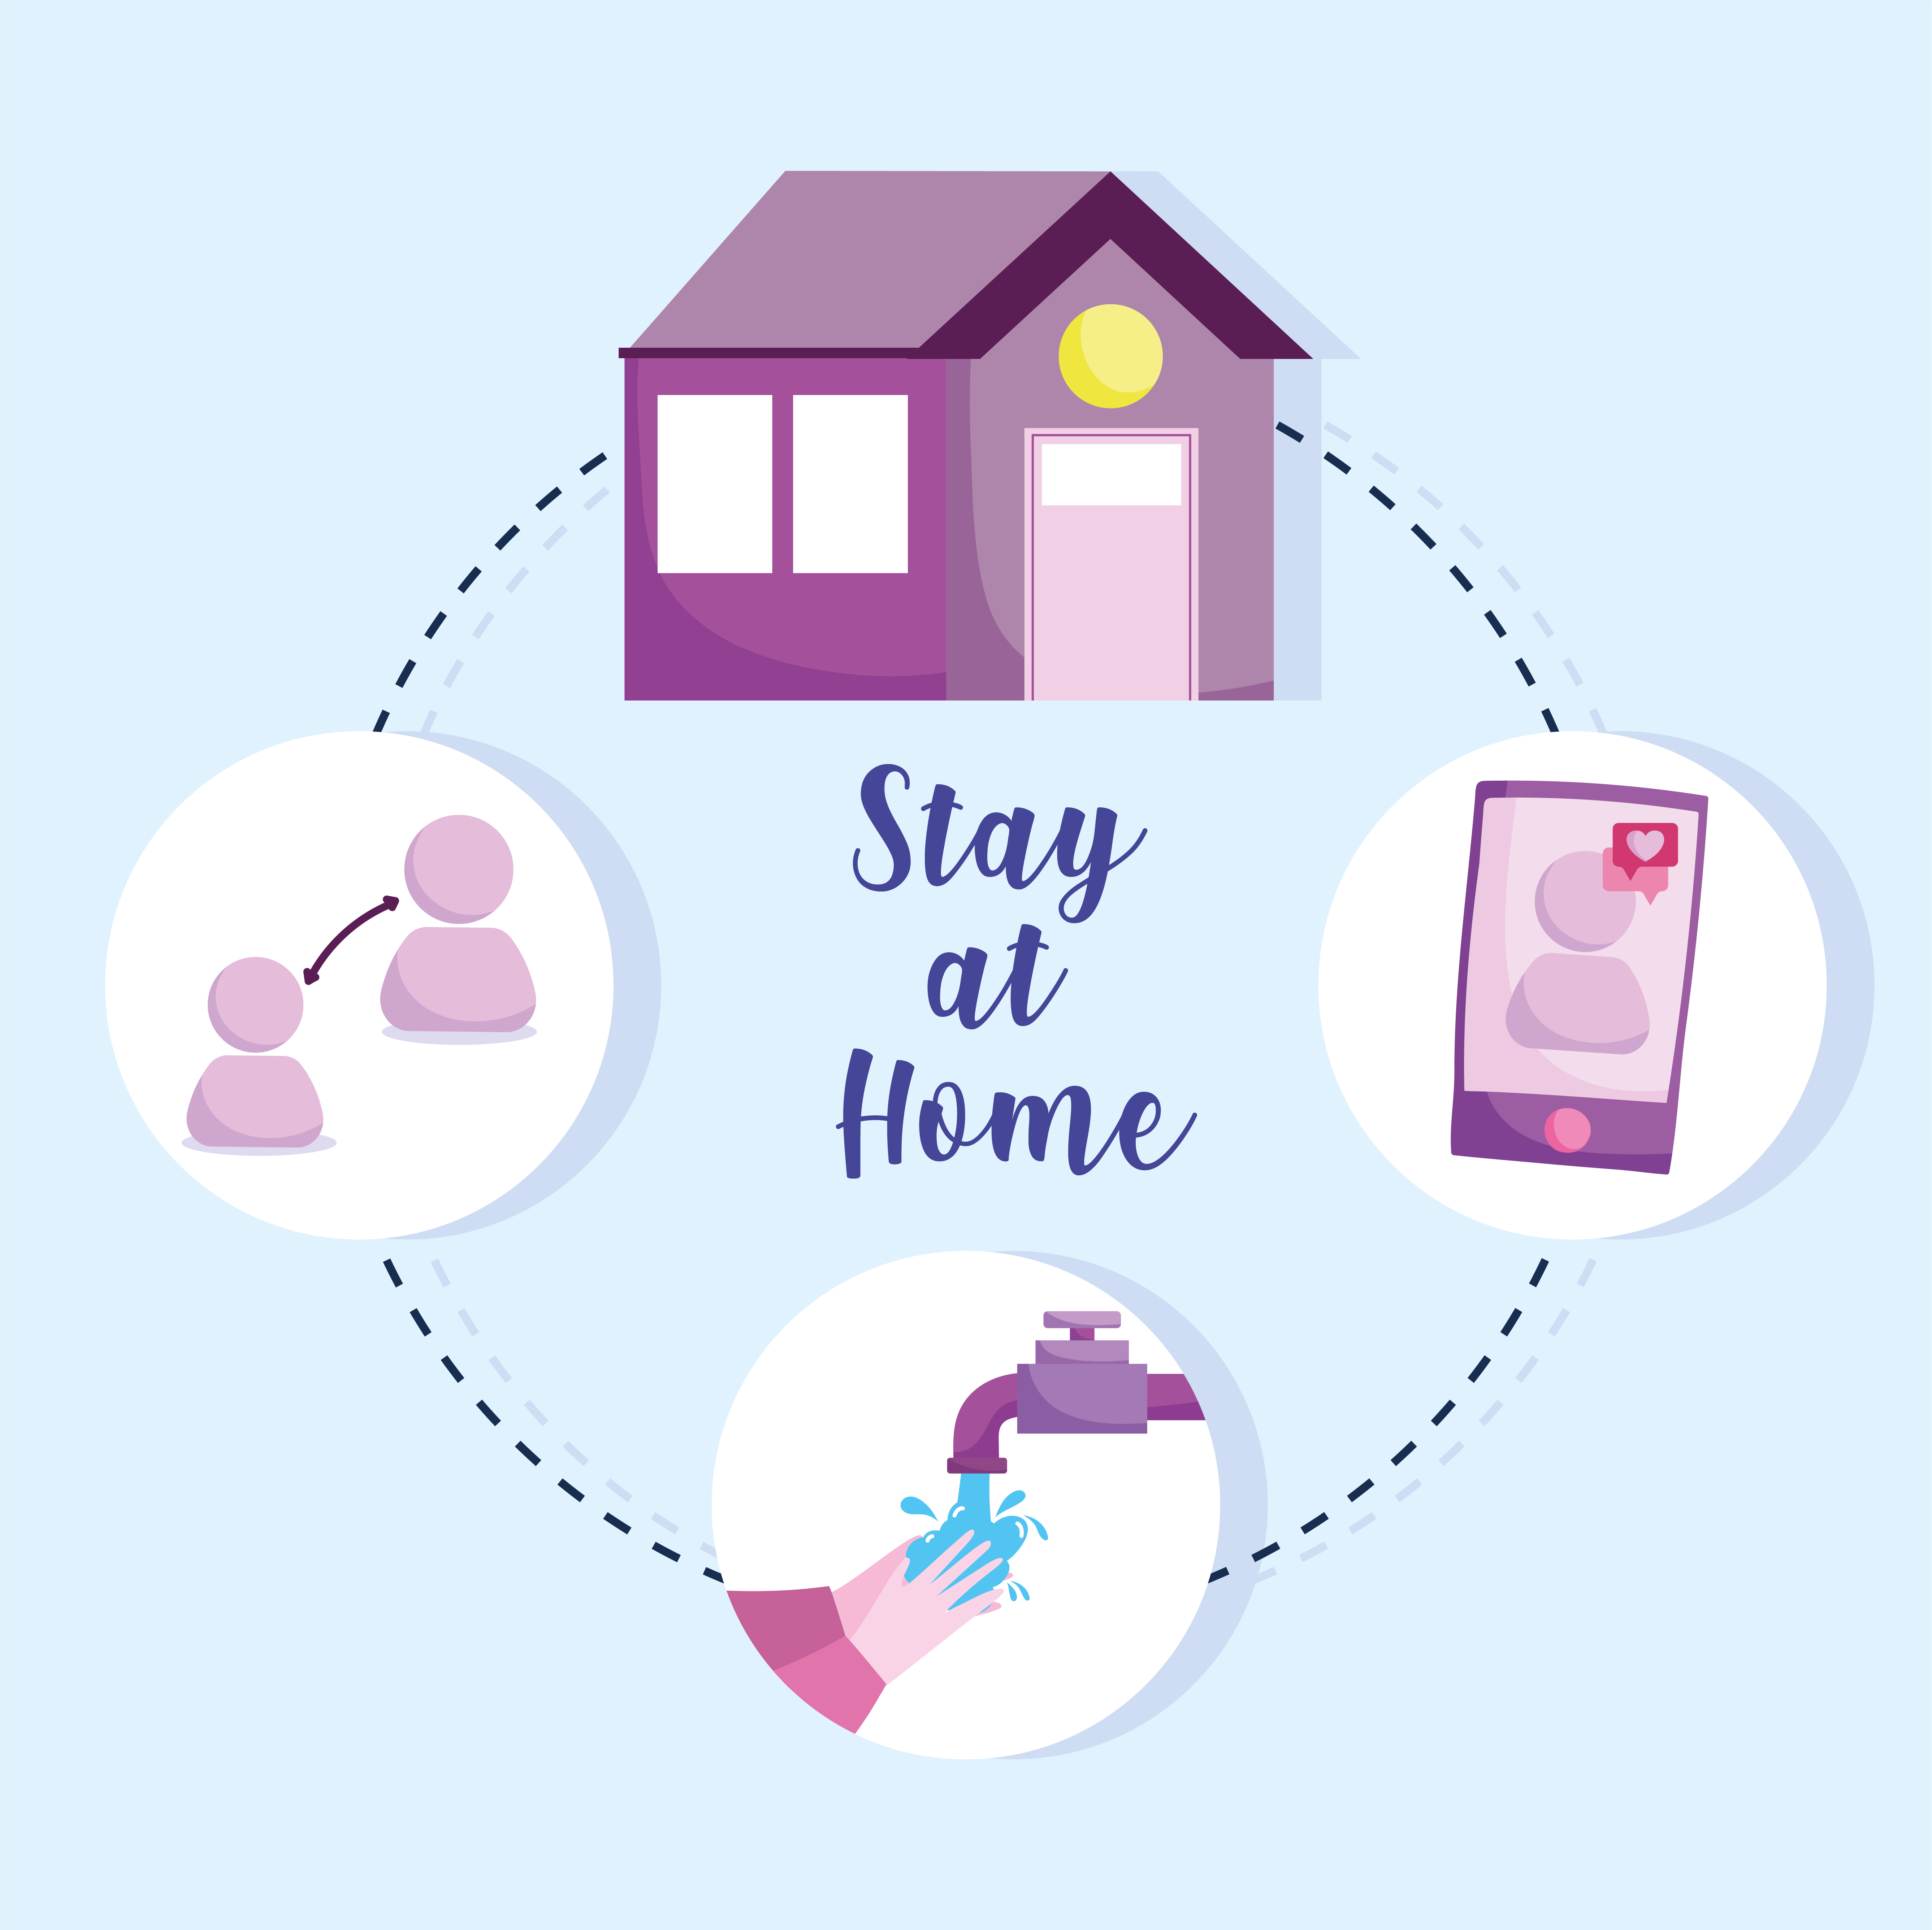 Stay at home preventive infographic